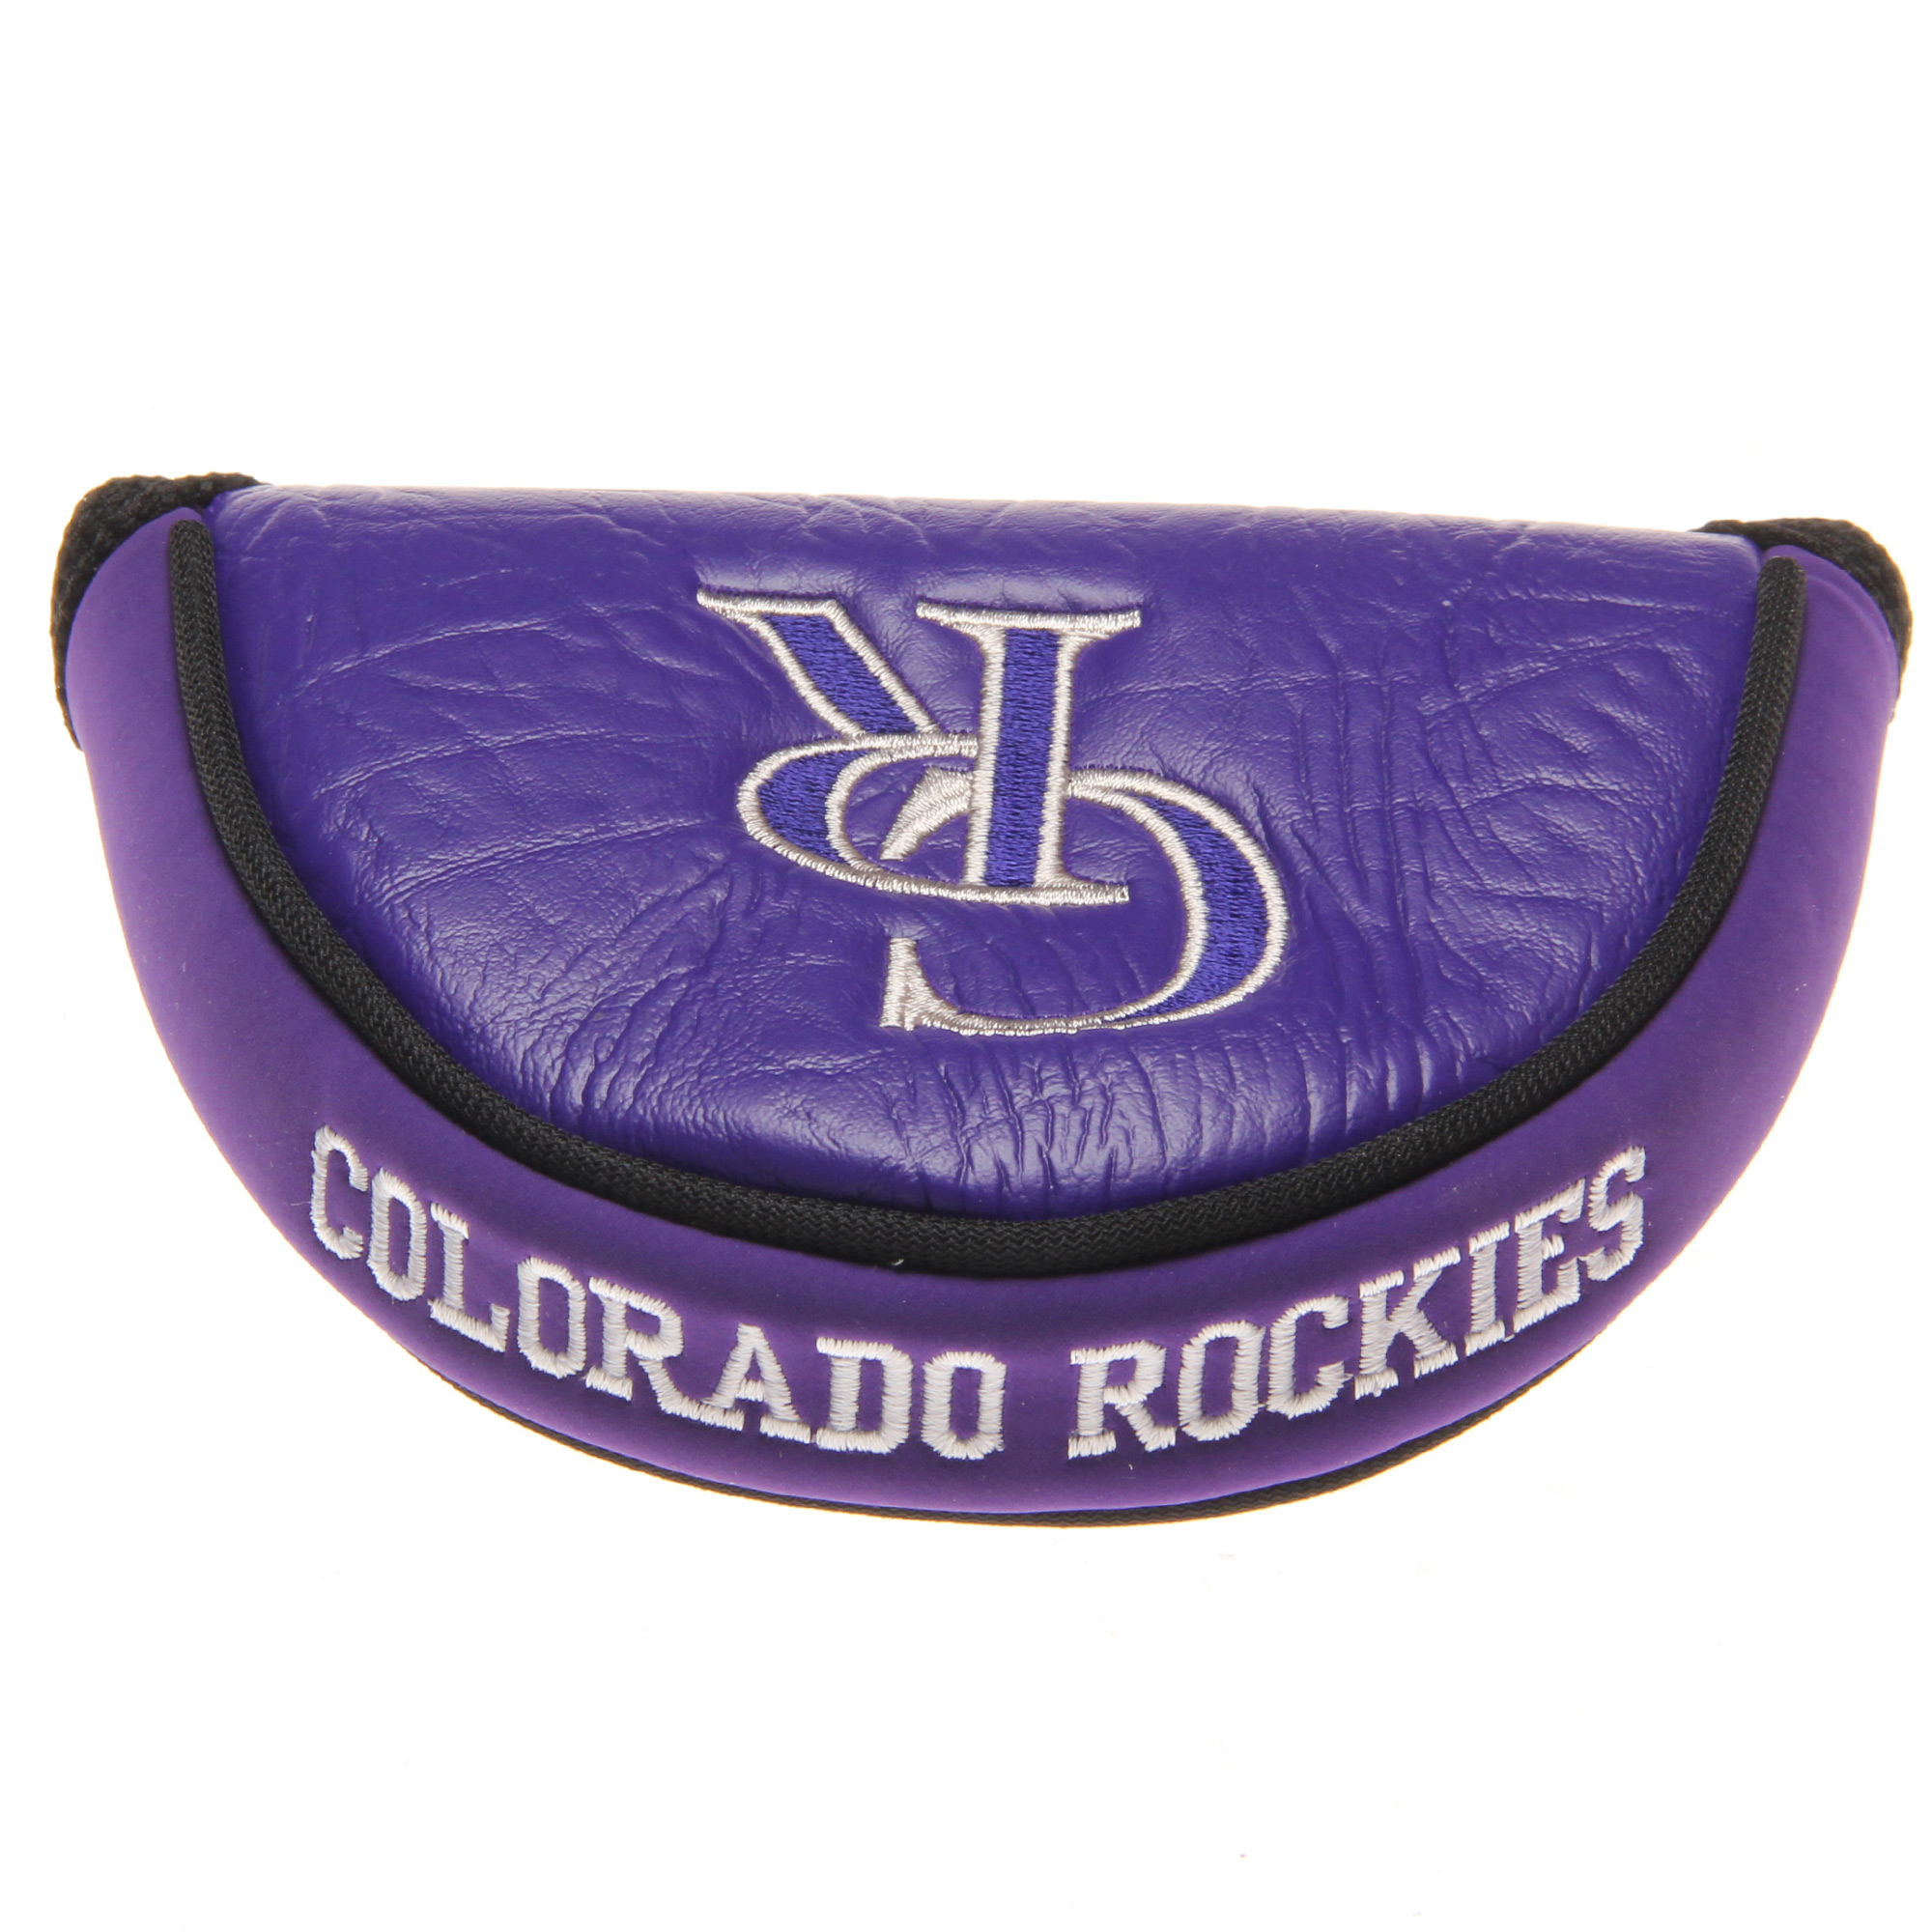 Colorado Rockies Golf Mallet Putter Cover - No Size